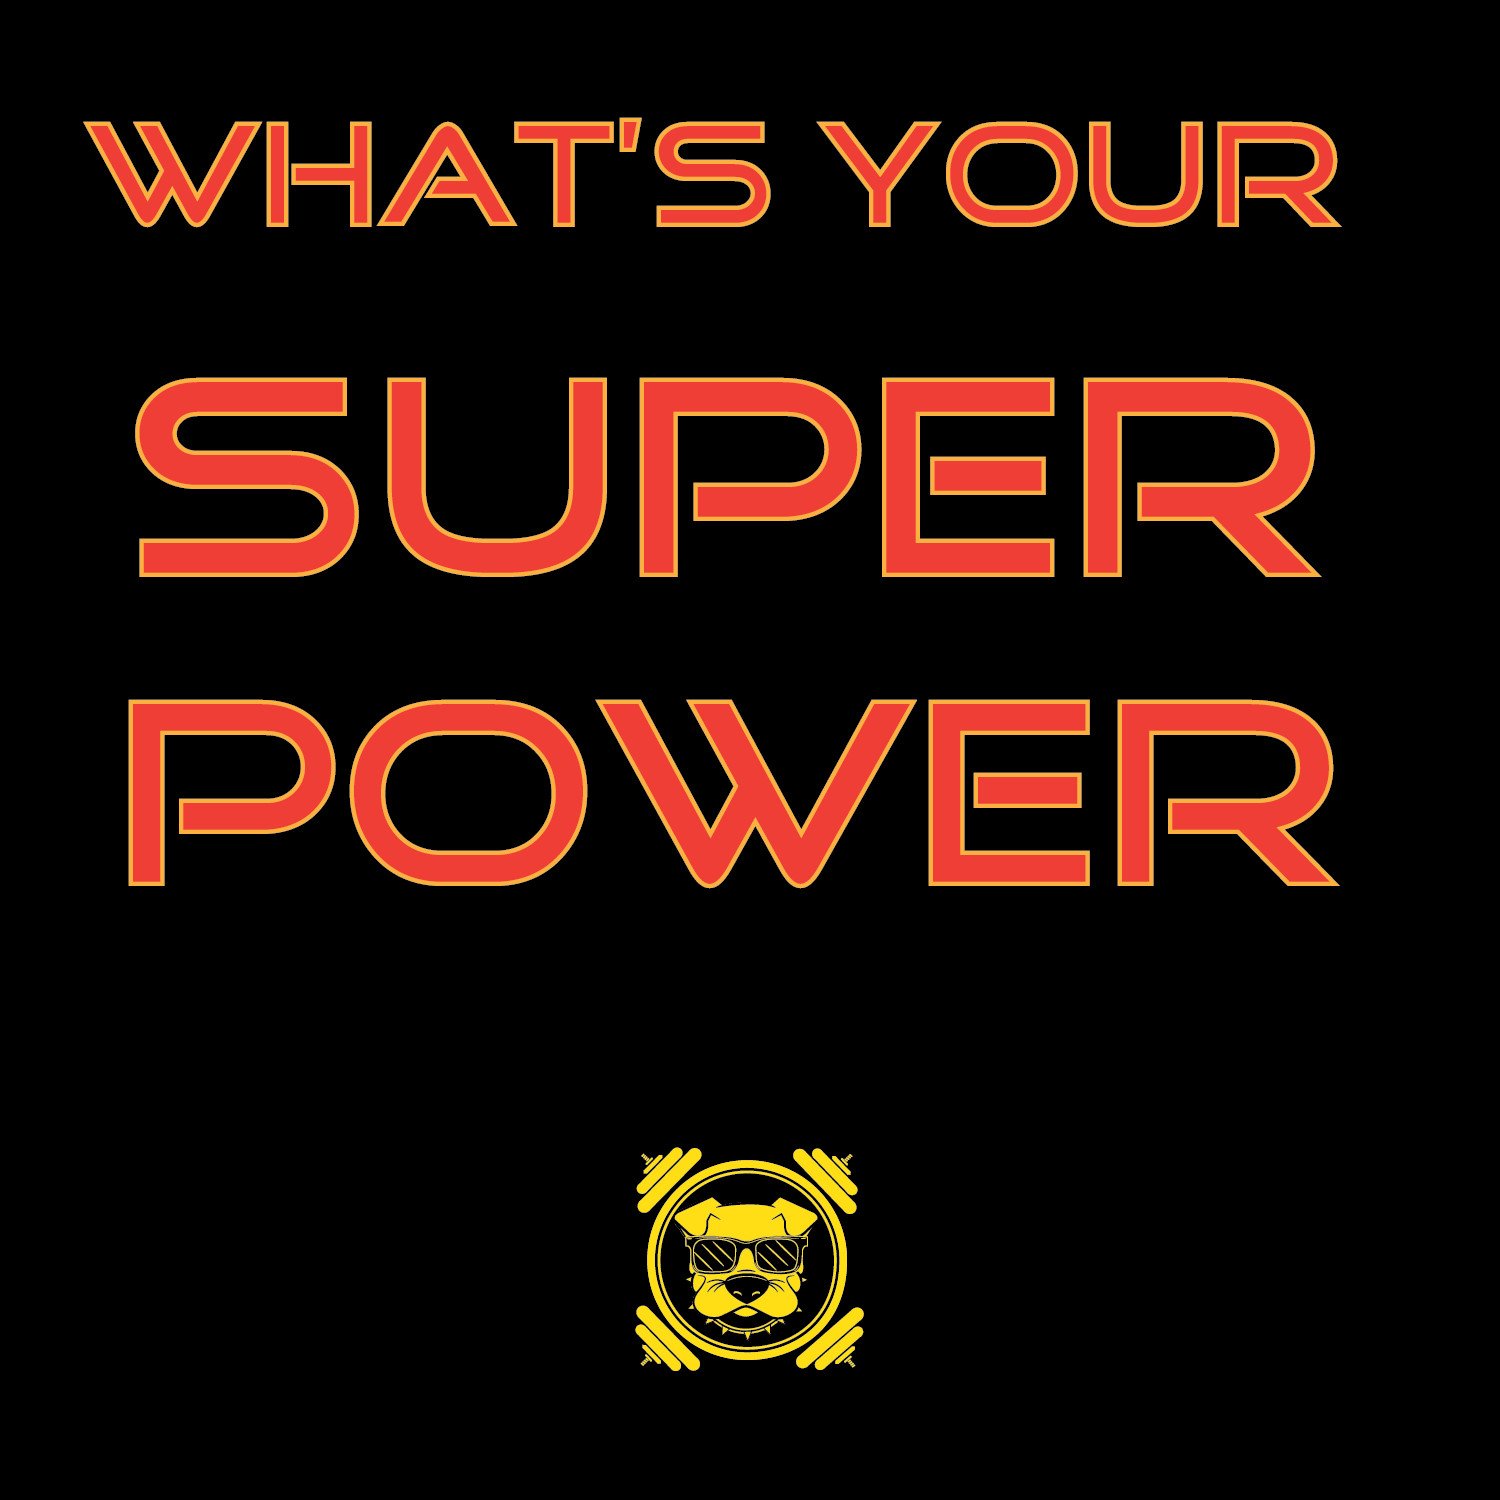 WHATS YOUR SUPER POWER